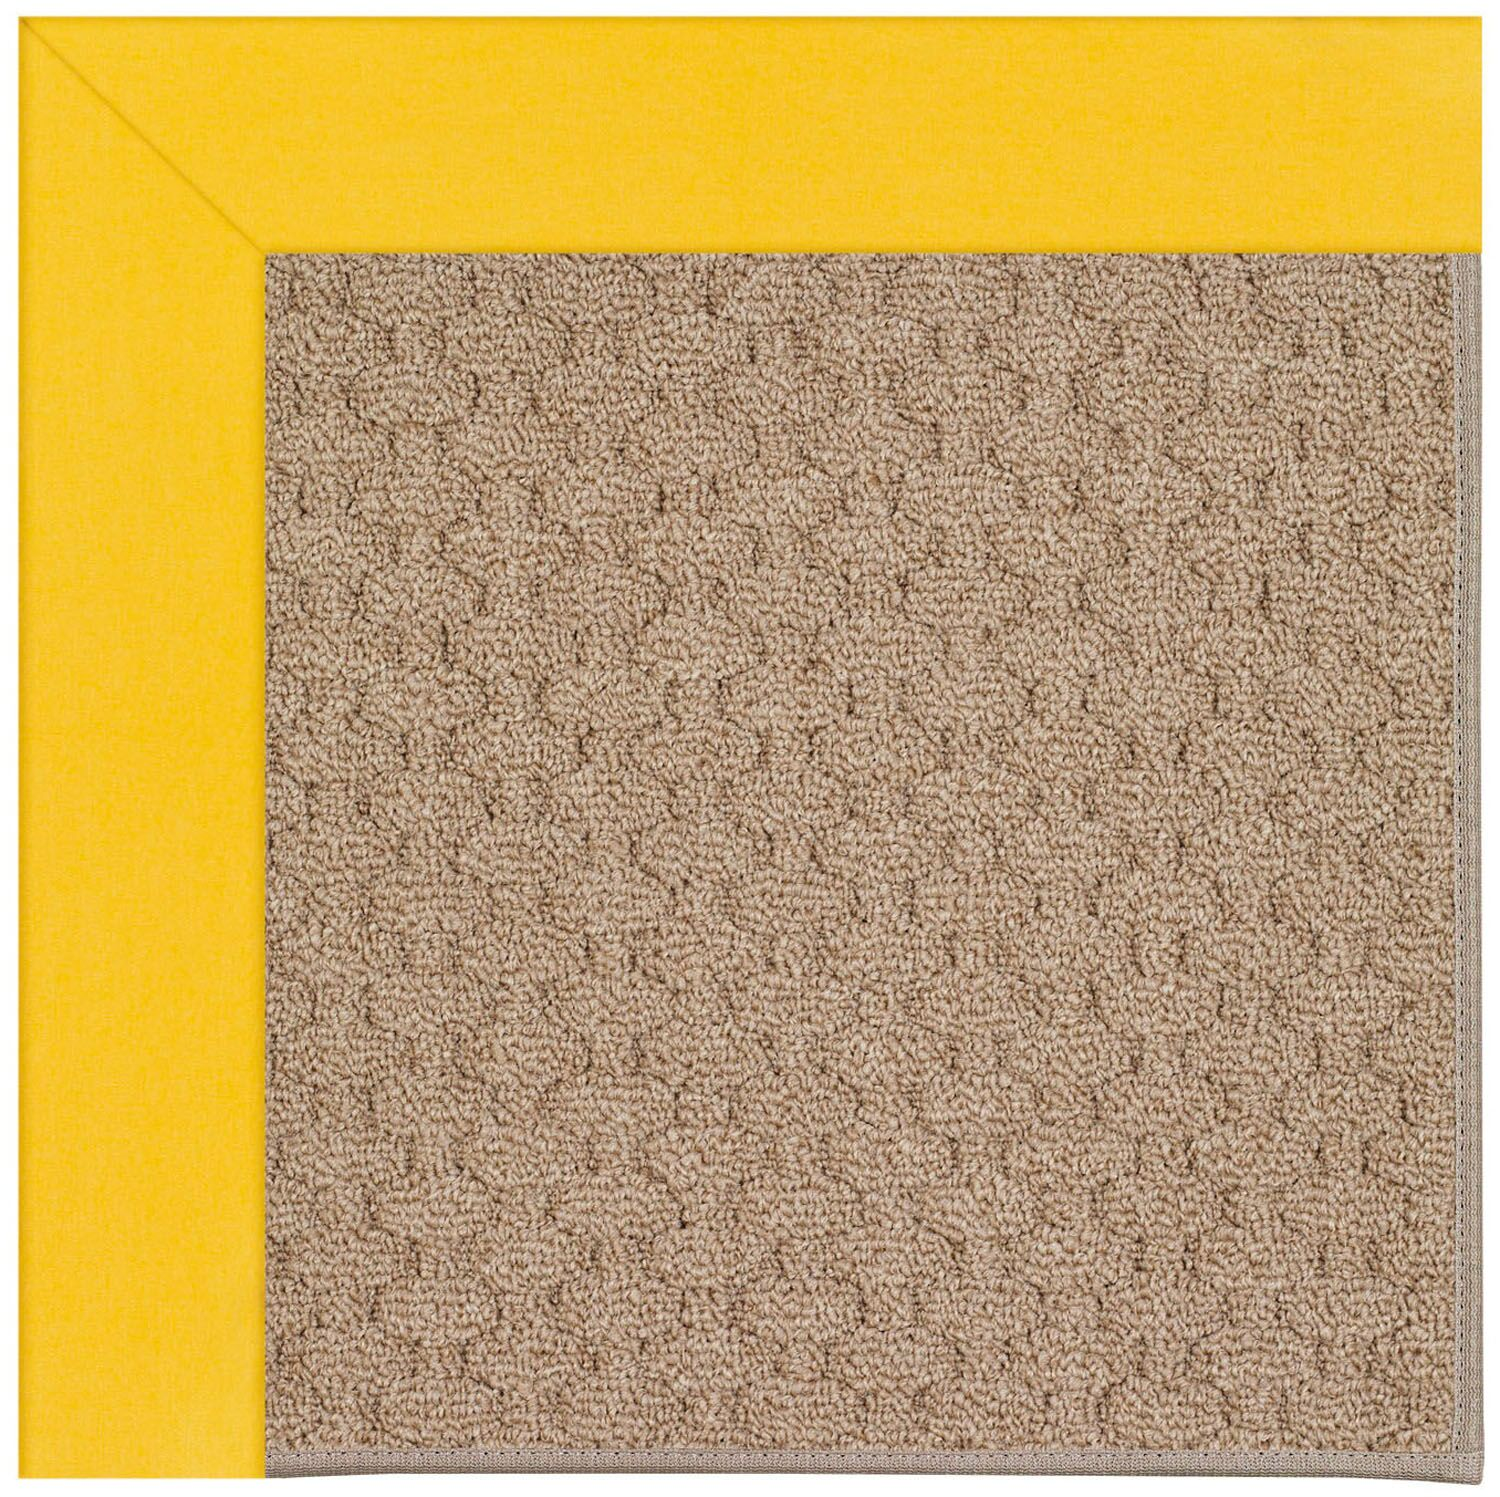 Lisle Machine Tufted Summertime Yellow/Brown Indoor/Outdoor Area Rug Rug Size: Rectangle 9' x 12'